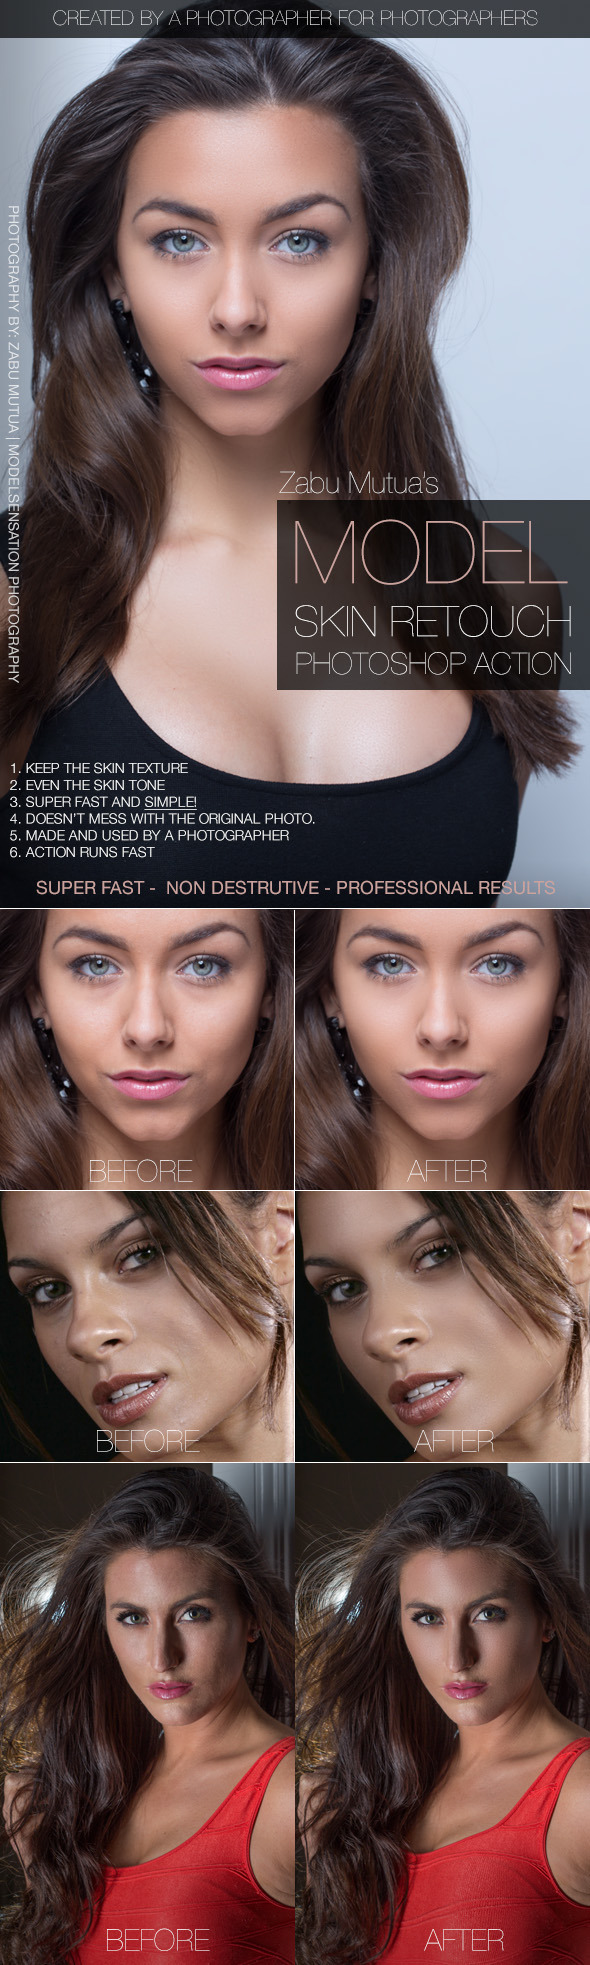 GraphicRiver Model Skin Retouch 10628342